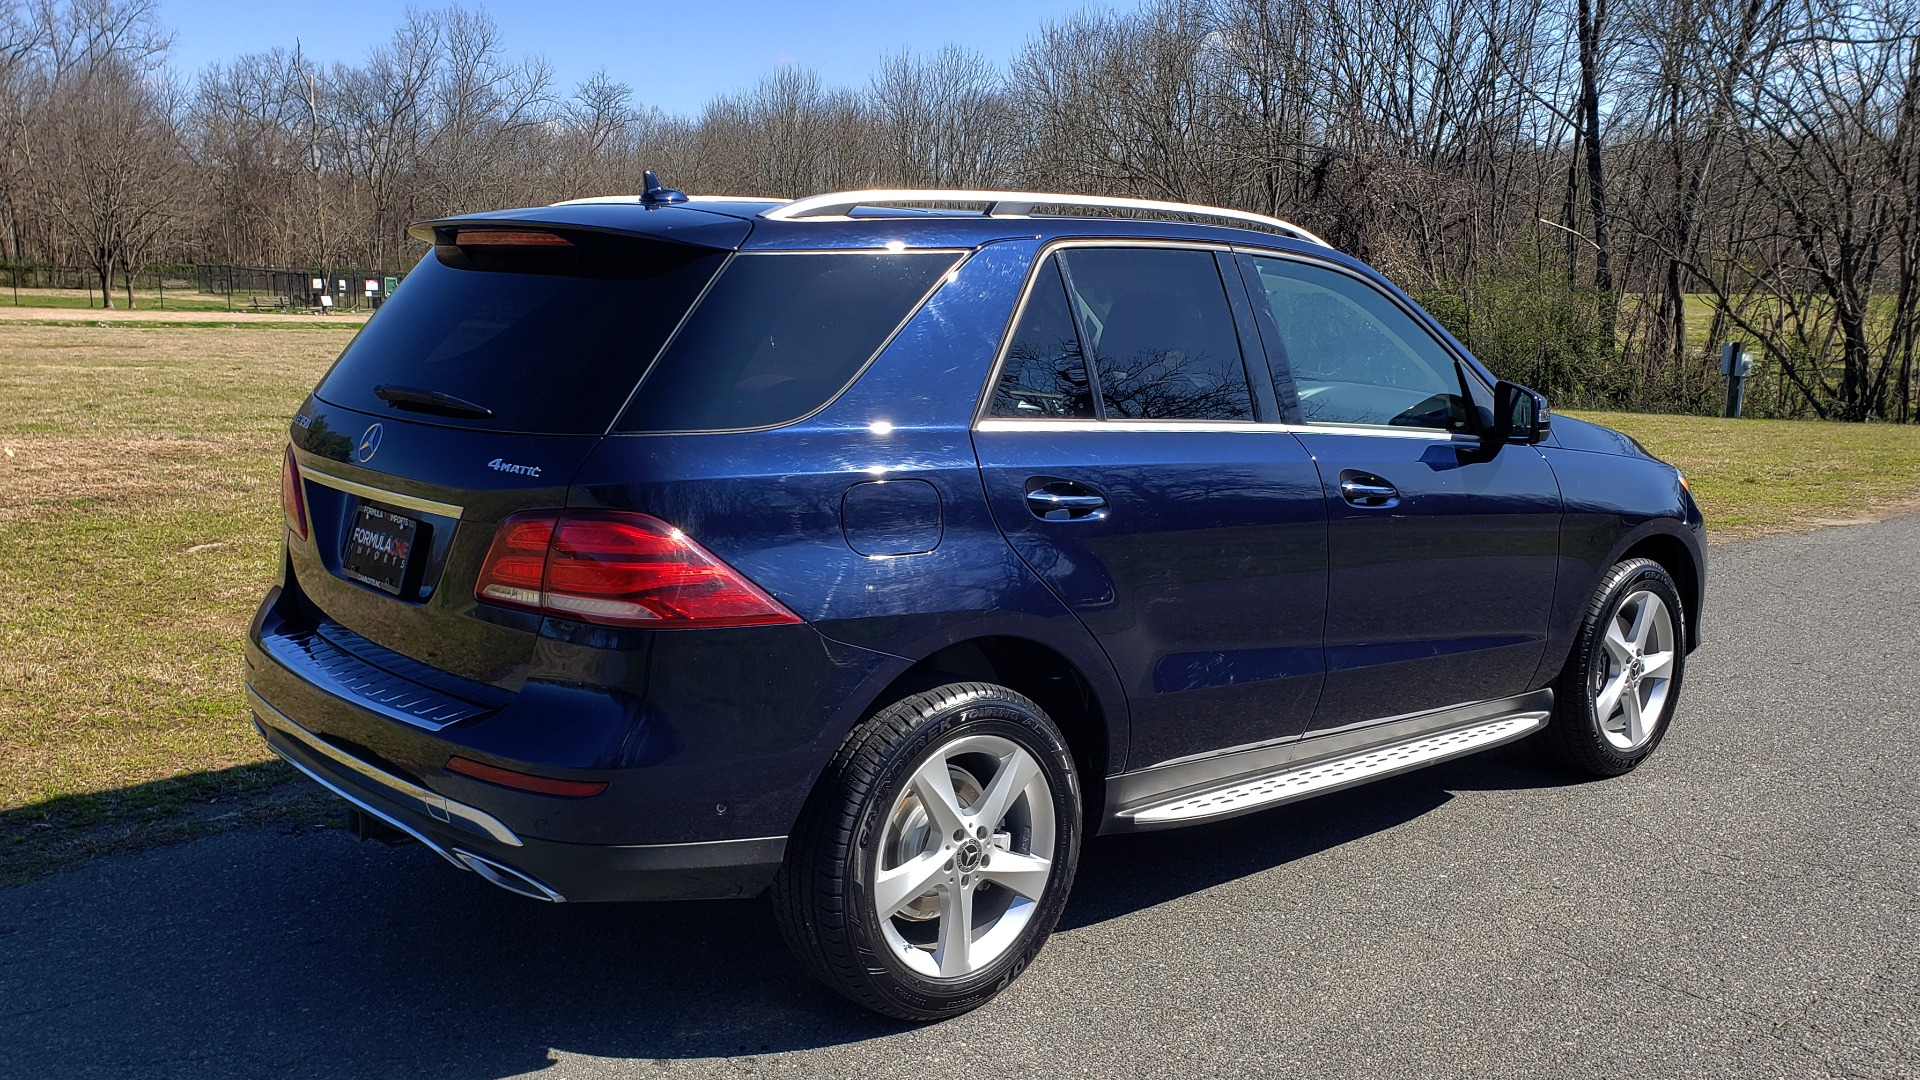 Used 2017 Mercedes-Benz GLE 350 PREMIUM / NAV / SUNROOF / PARK ASST / HTD STS for sale Sold at Formula Imports in Charlotte NC 28227 6